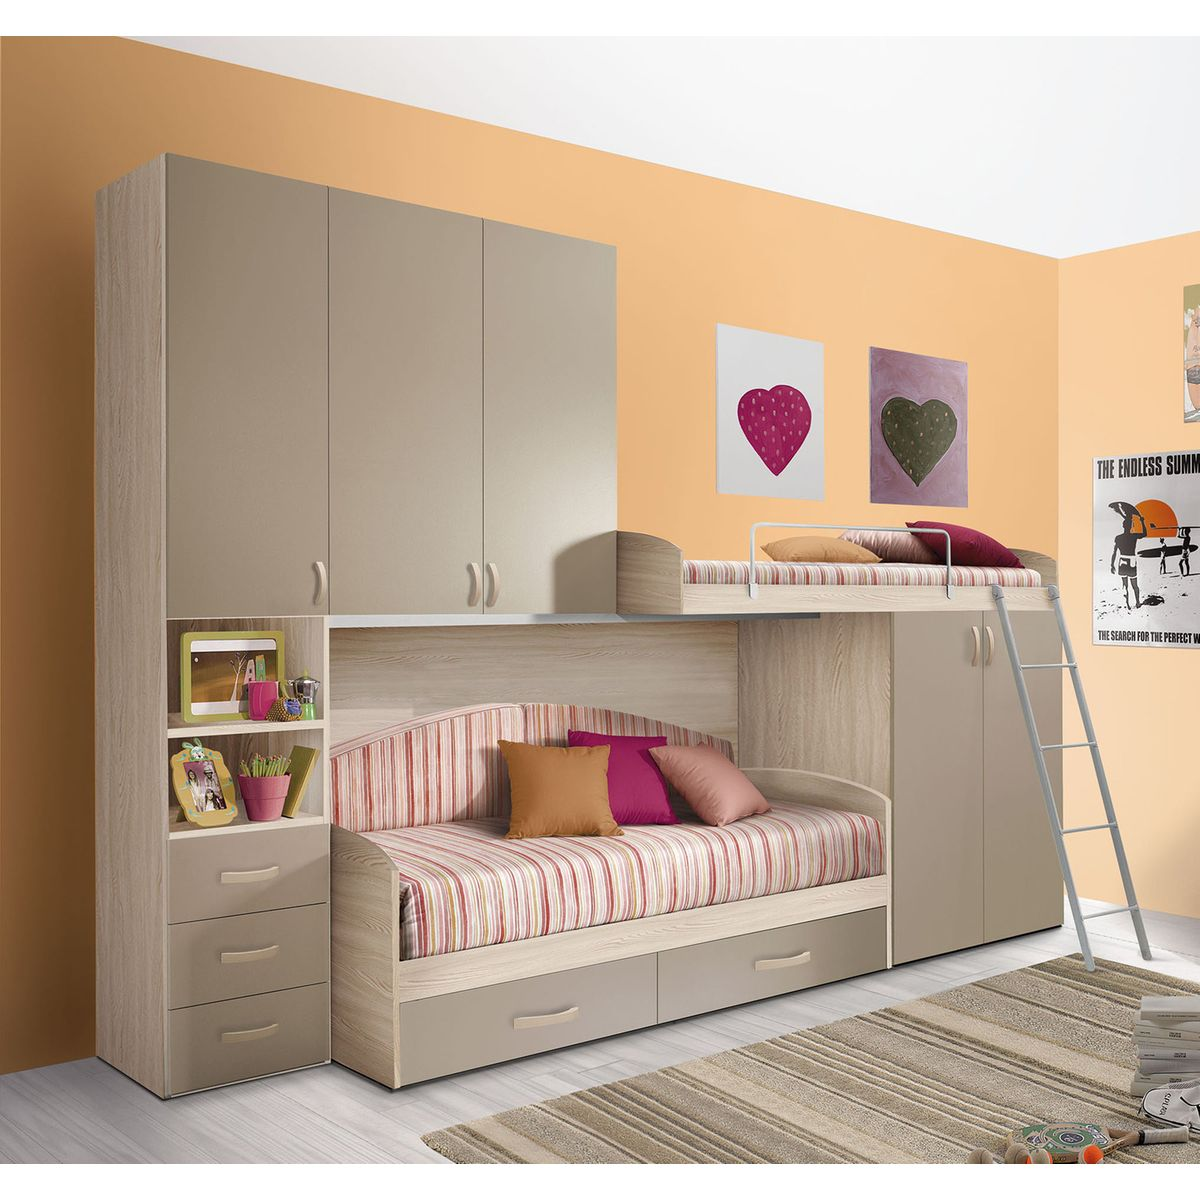 chambre d 39 enfant compl te hurra mennza chambre compl te enfant la redoute. Black Bedroom Furniture Sets. Home Design Ideas